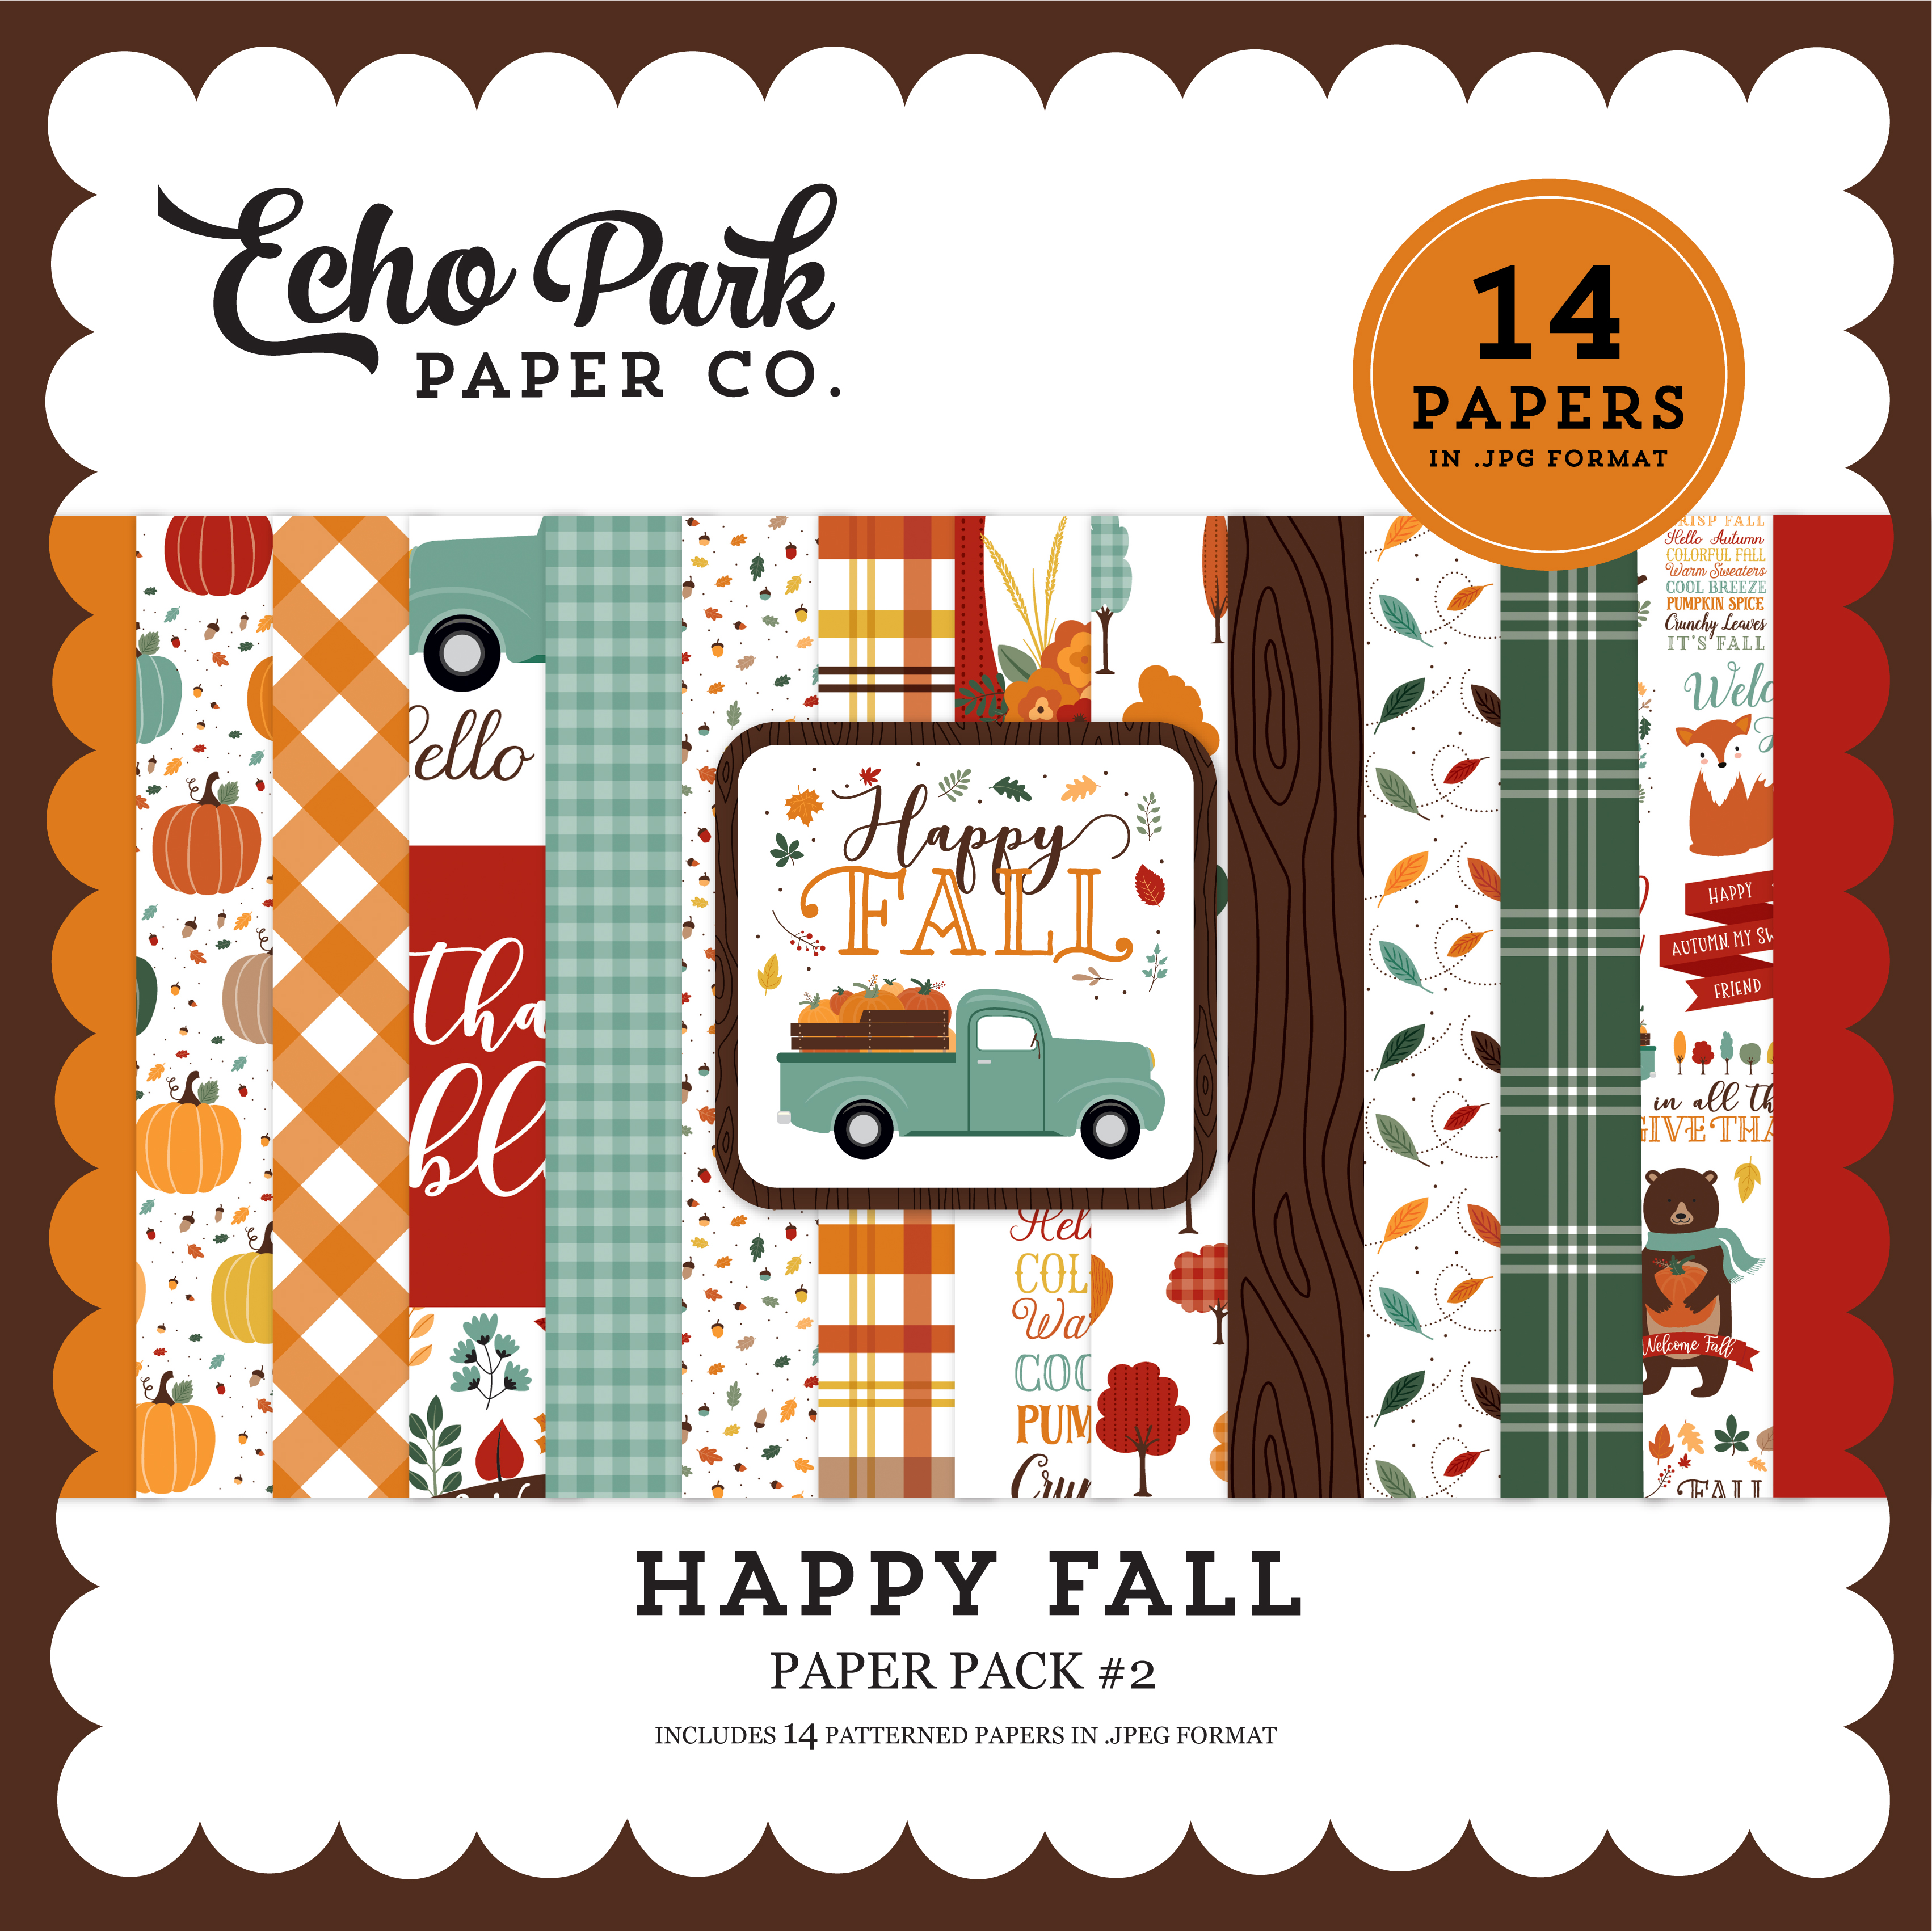 Happy Fall Paper Pack #2